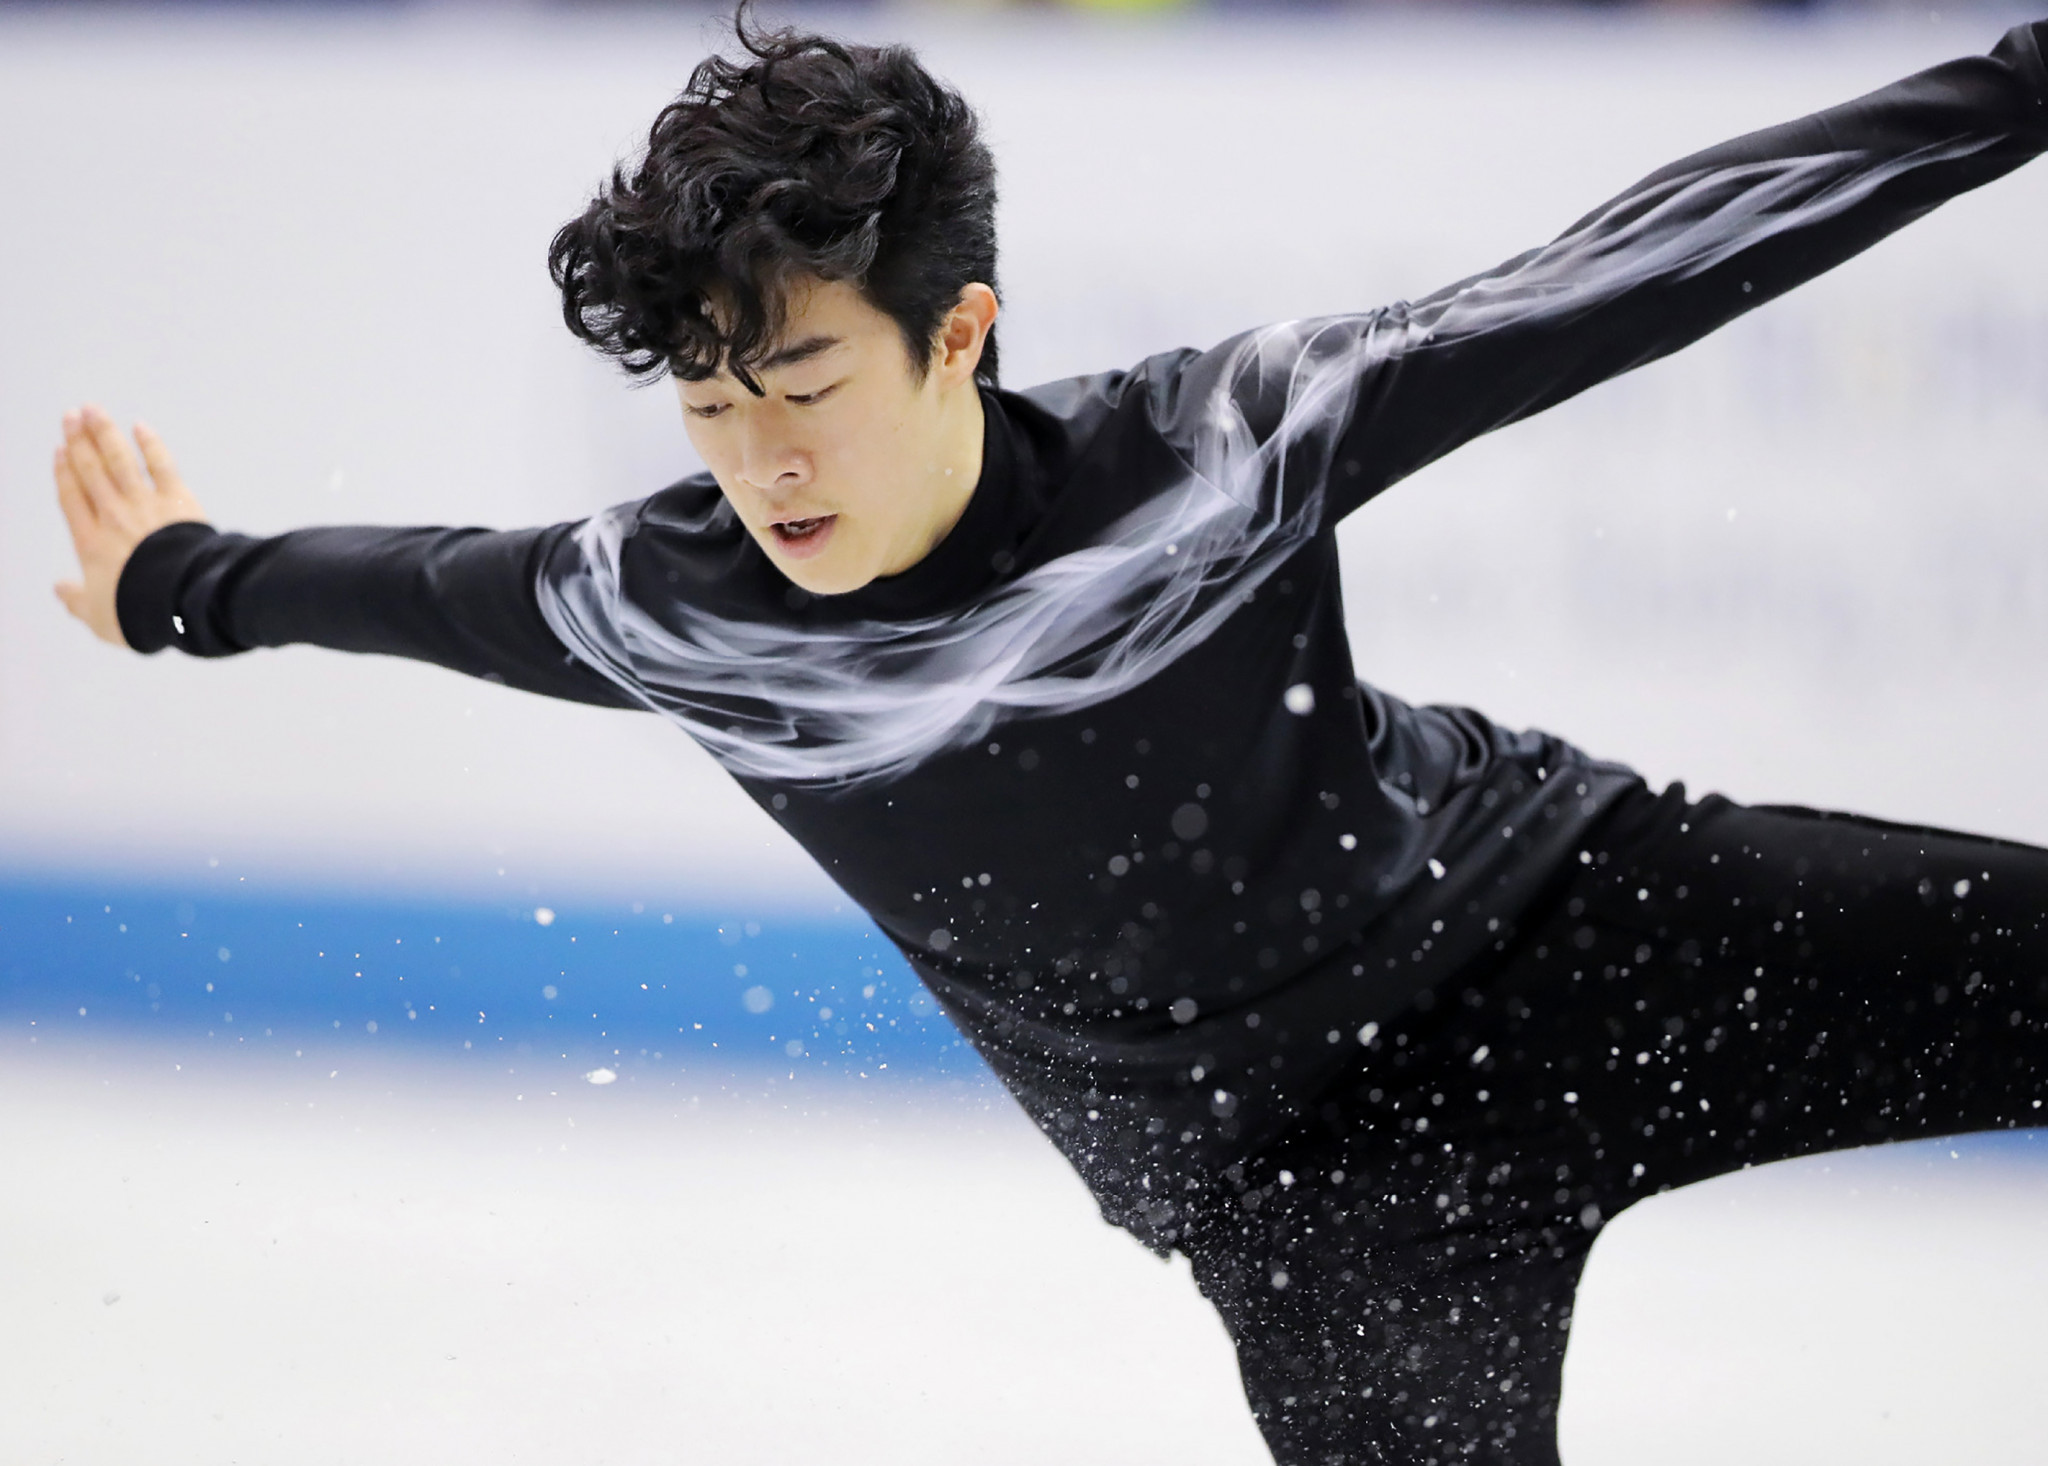 Chen leads men's competition at Skate America